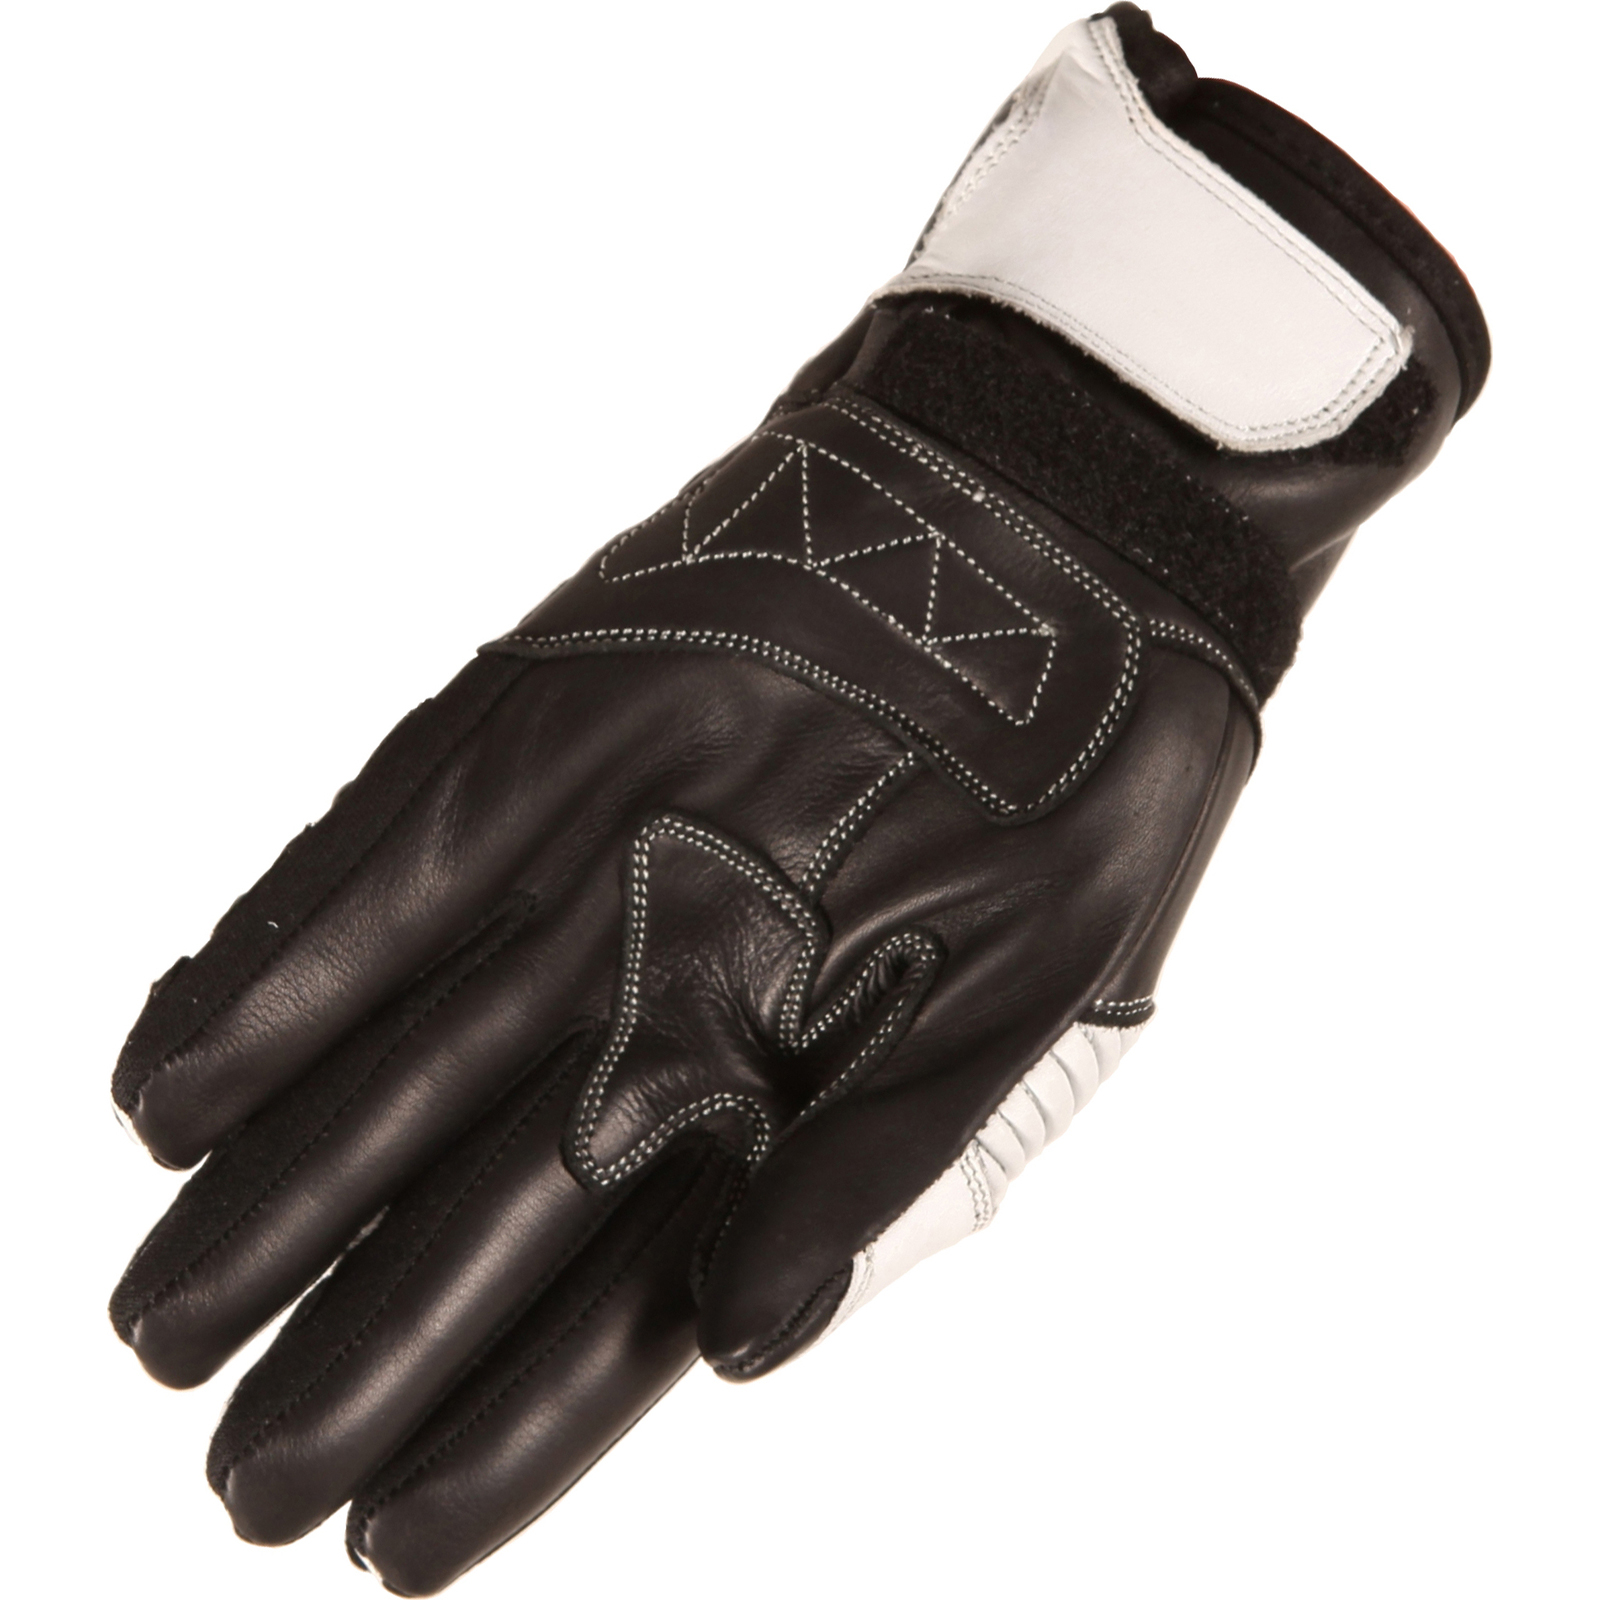 Motorcycle gloves hard knuckles - Buffalo Bambino Youth Motorcycle Gloves Leather Junior Childrens